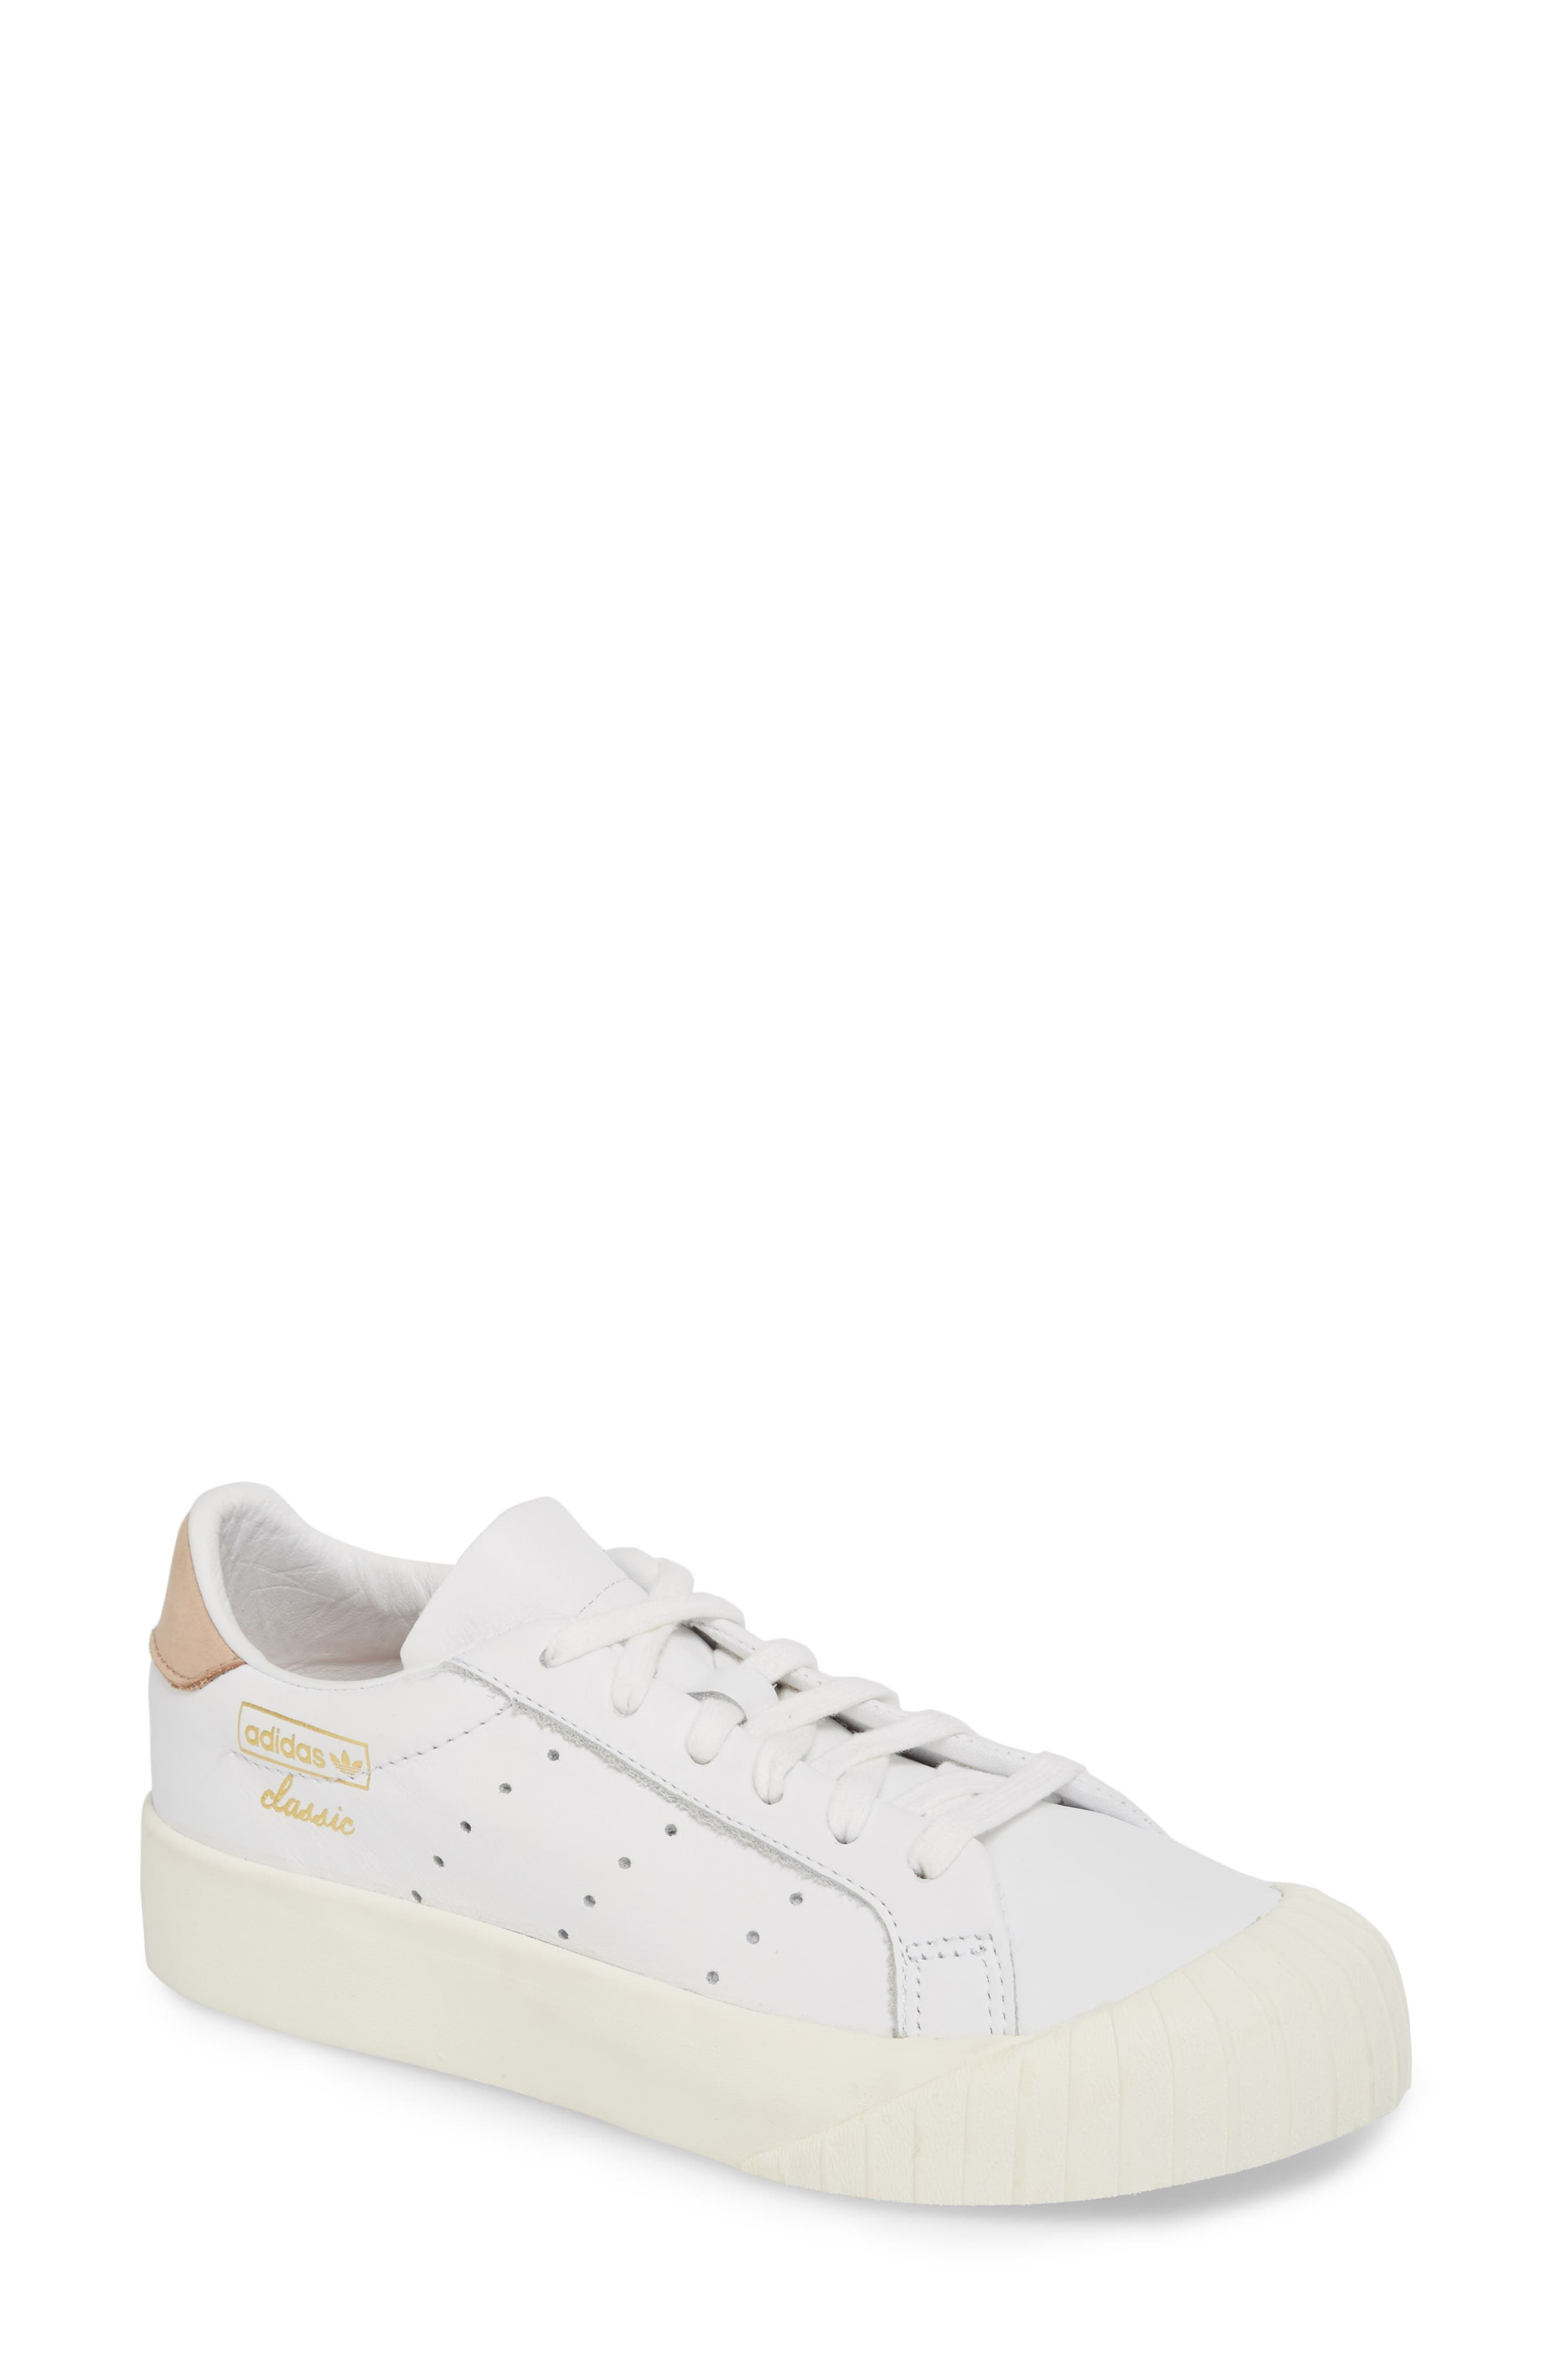 Everyn Perforated Low Top Sneaker,                             Main thumbnail 2, color,